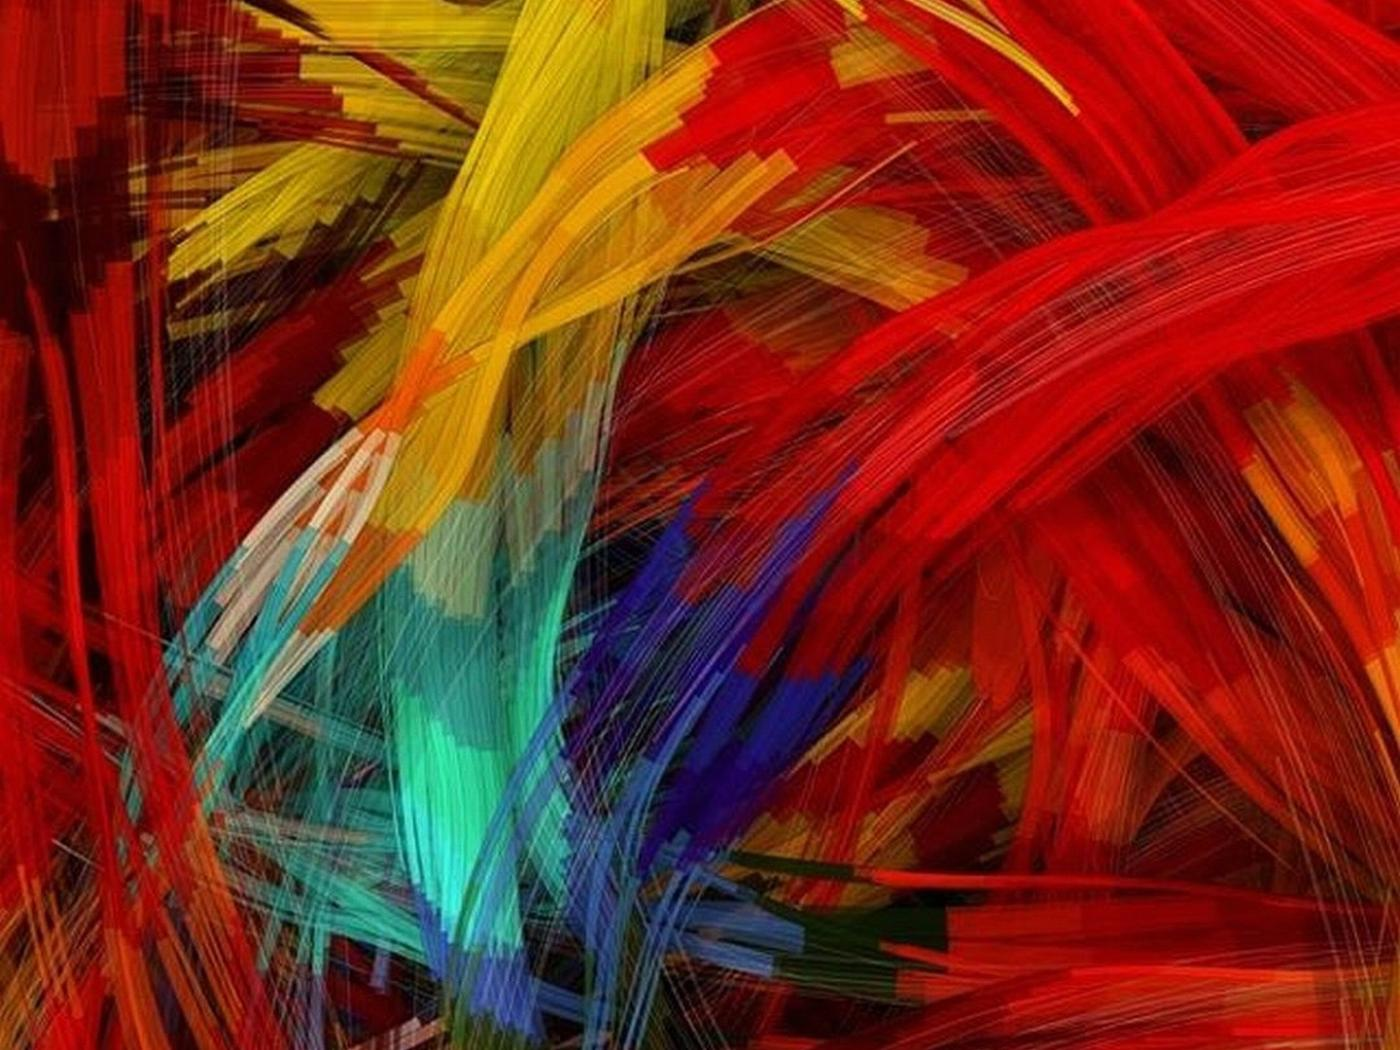 Cool Abstract Colorful Animated Phone Wallpaper Free ...